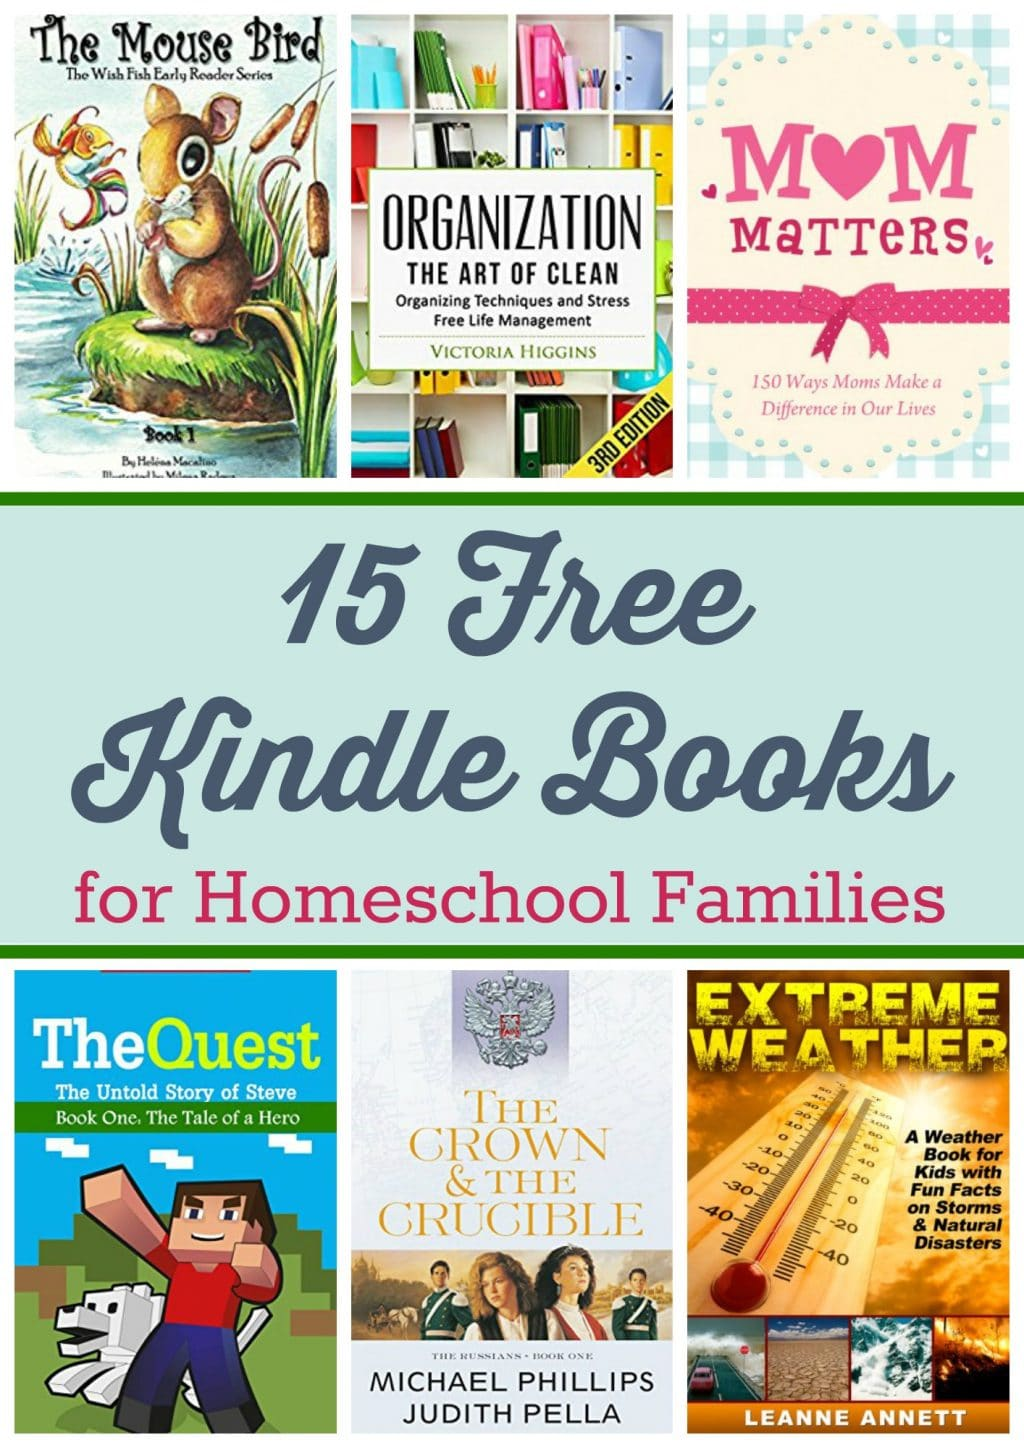 15 Kindle Freebies: Five Children & It, The Crucible and the Crown, & More!